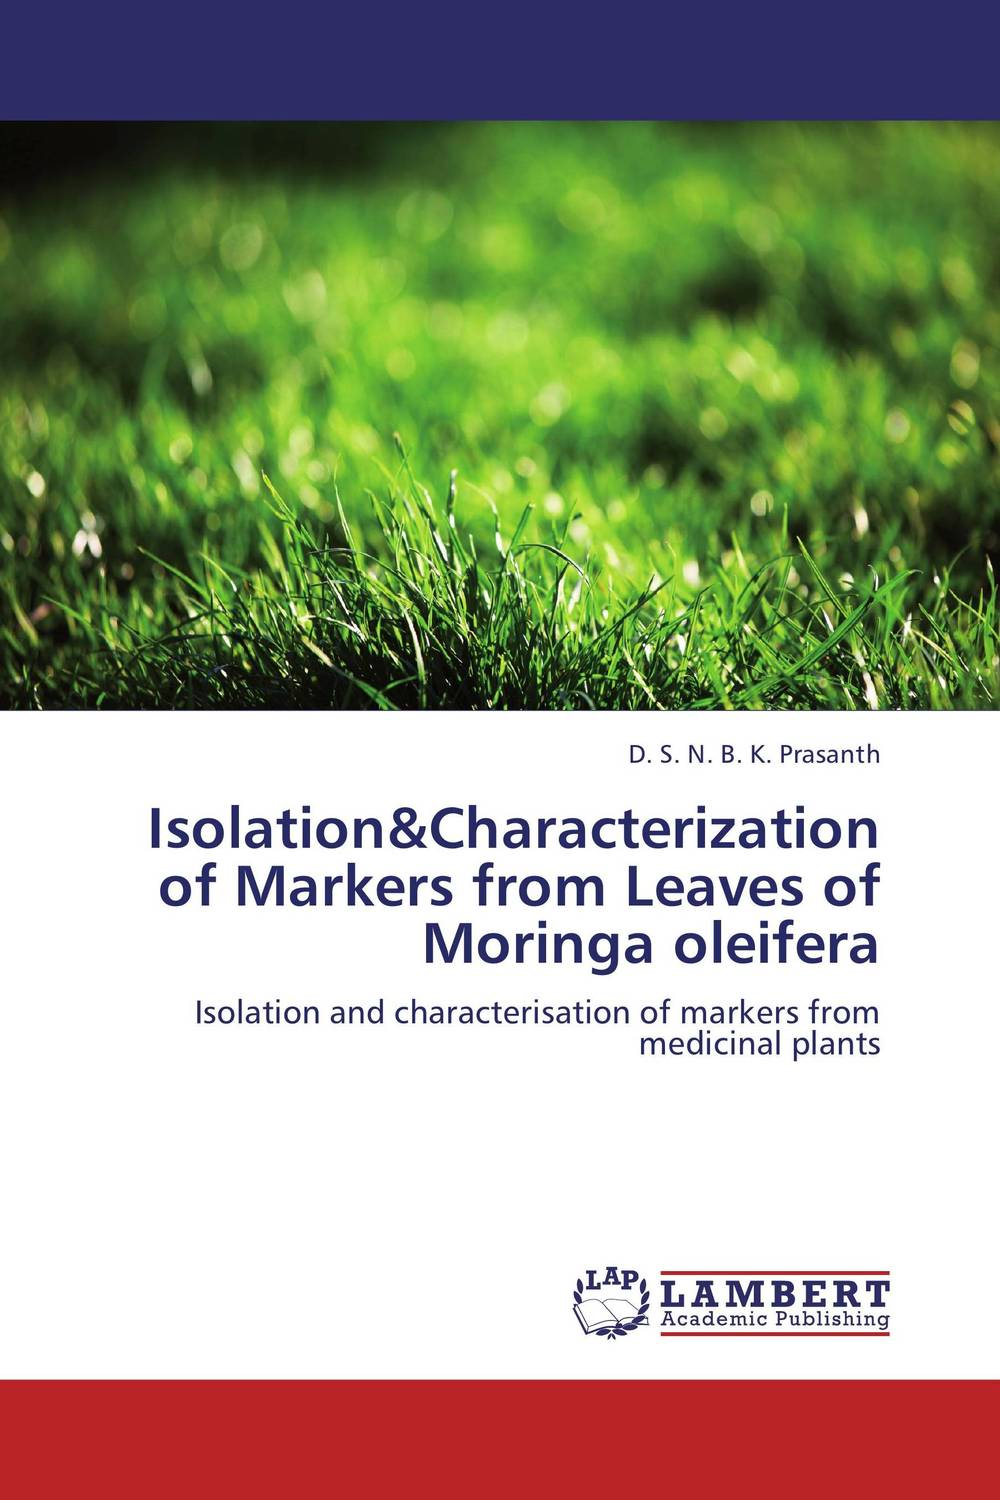 Isolation&Characterization of Markers from Leaves of Moringa oleifera handbook of isolation and characterization of impurities in pharmaceuticals 5